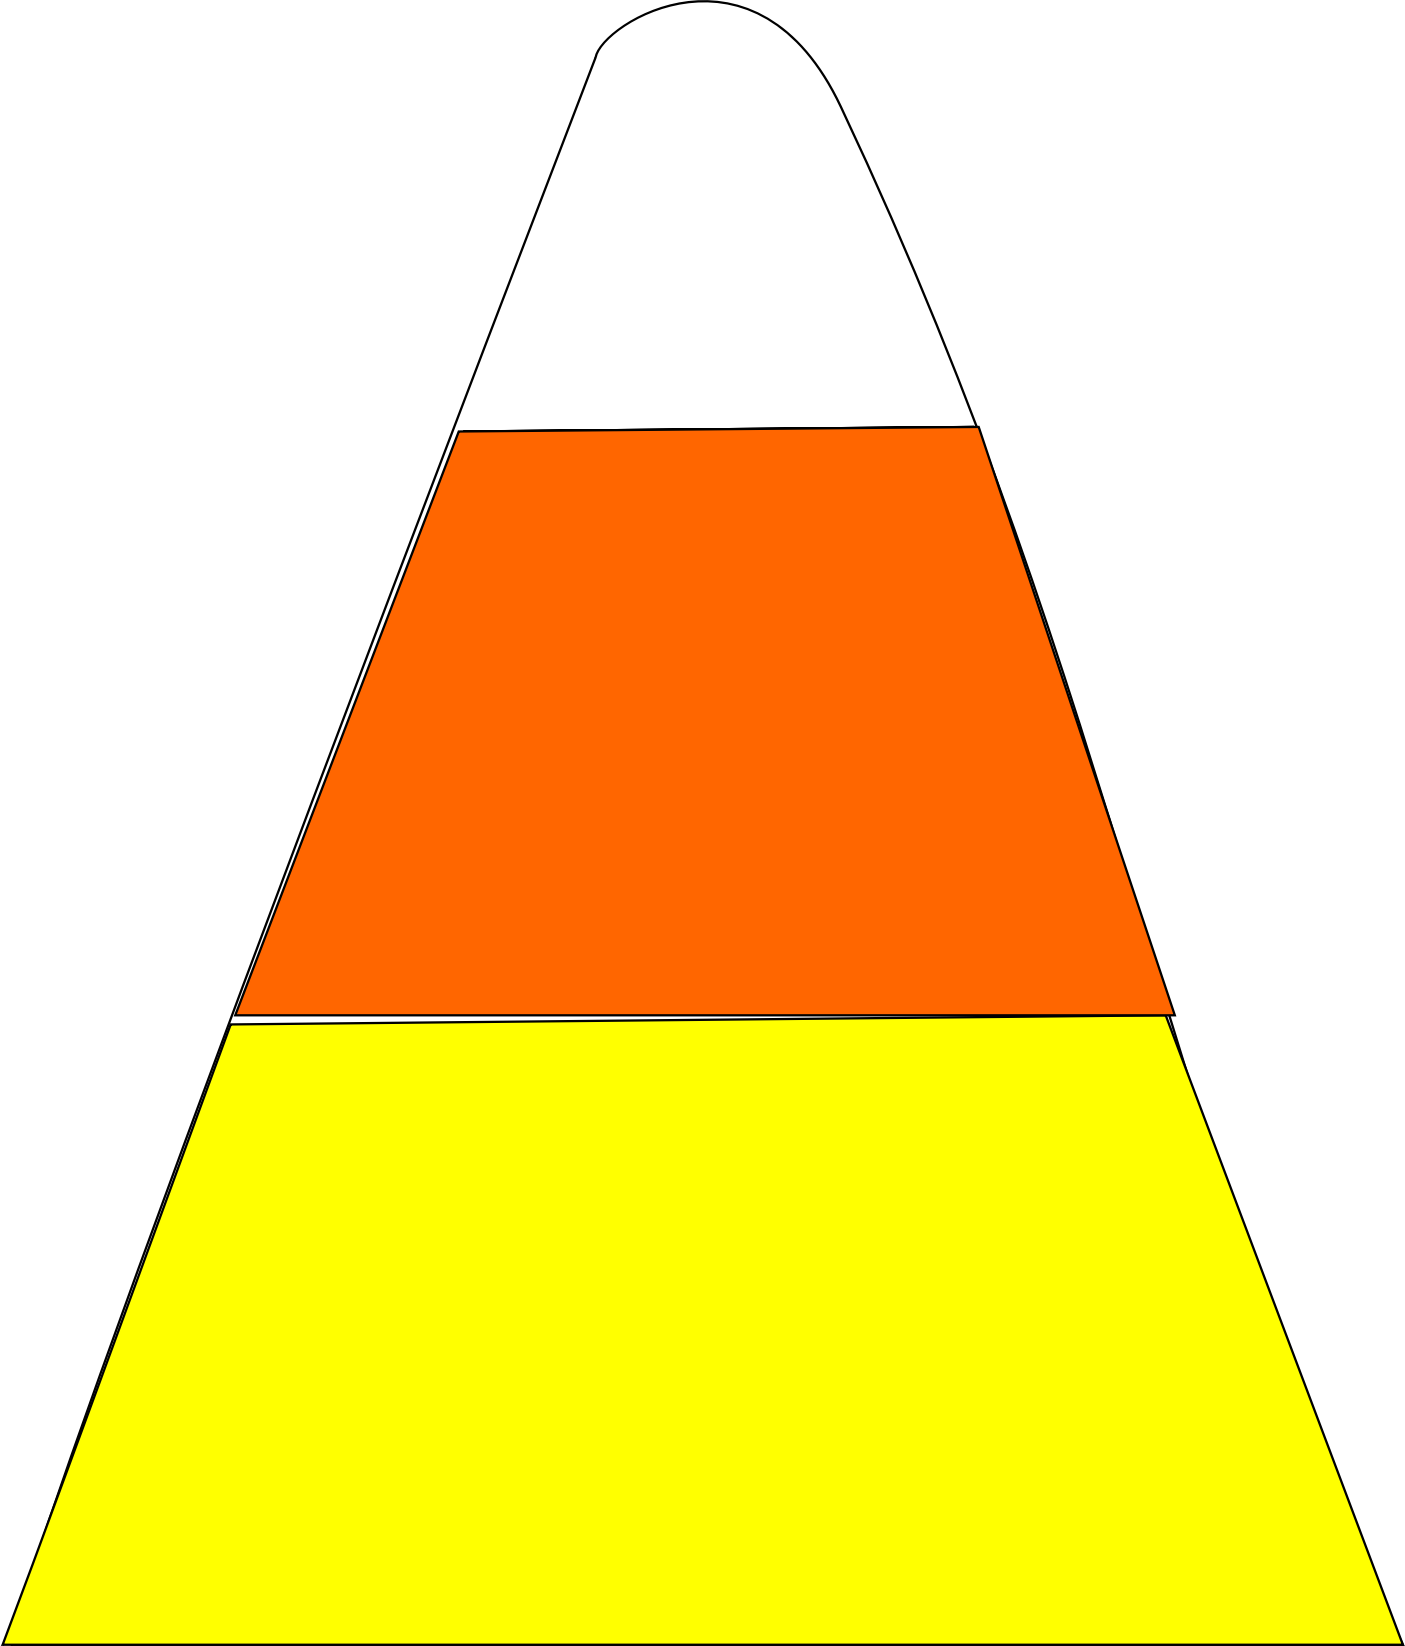 Candy Corn Clipart - 47 cliparts